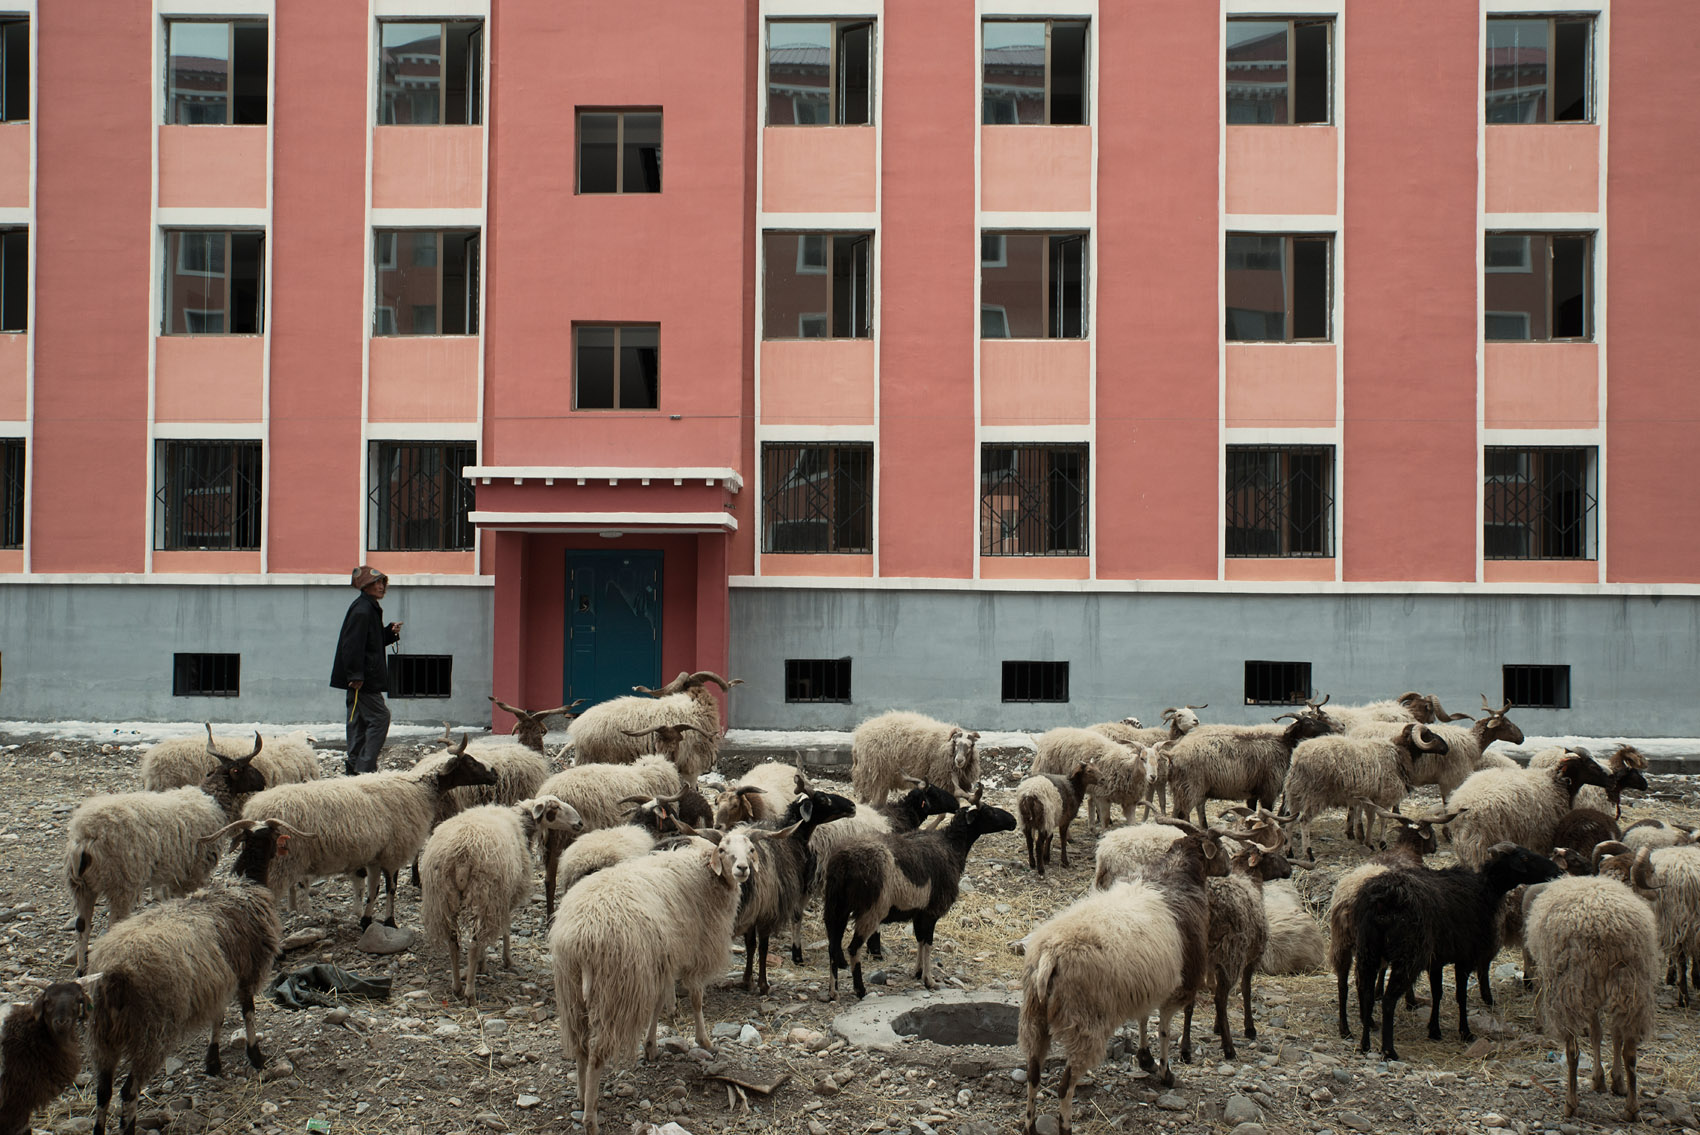 In a residential compound recently completed, but yet waiting for its inhabitants, a Tibetan herder has brought his livestock, sheep and horses, to graze in the rubbles. The government campaign to move Tibetan herders to urban areas and curtail pastoralism has put the nomads traditional lifestyle and livelihood at risk. The environmental rational behind this policy is questioned by human rights group and scientists alike.